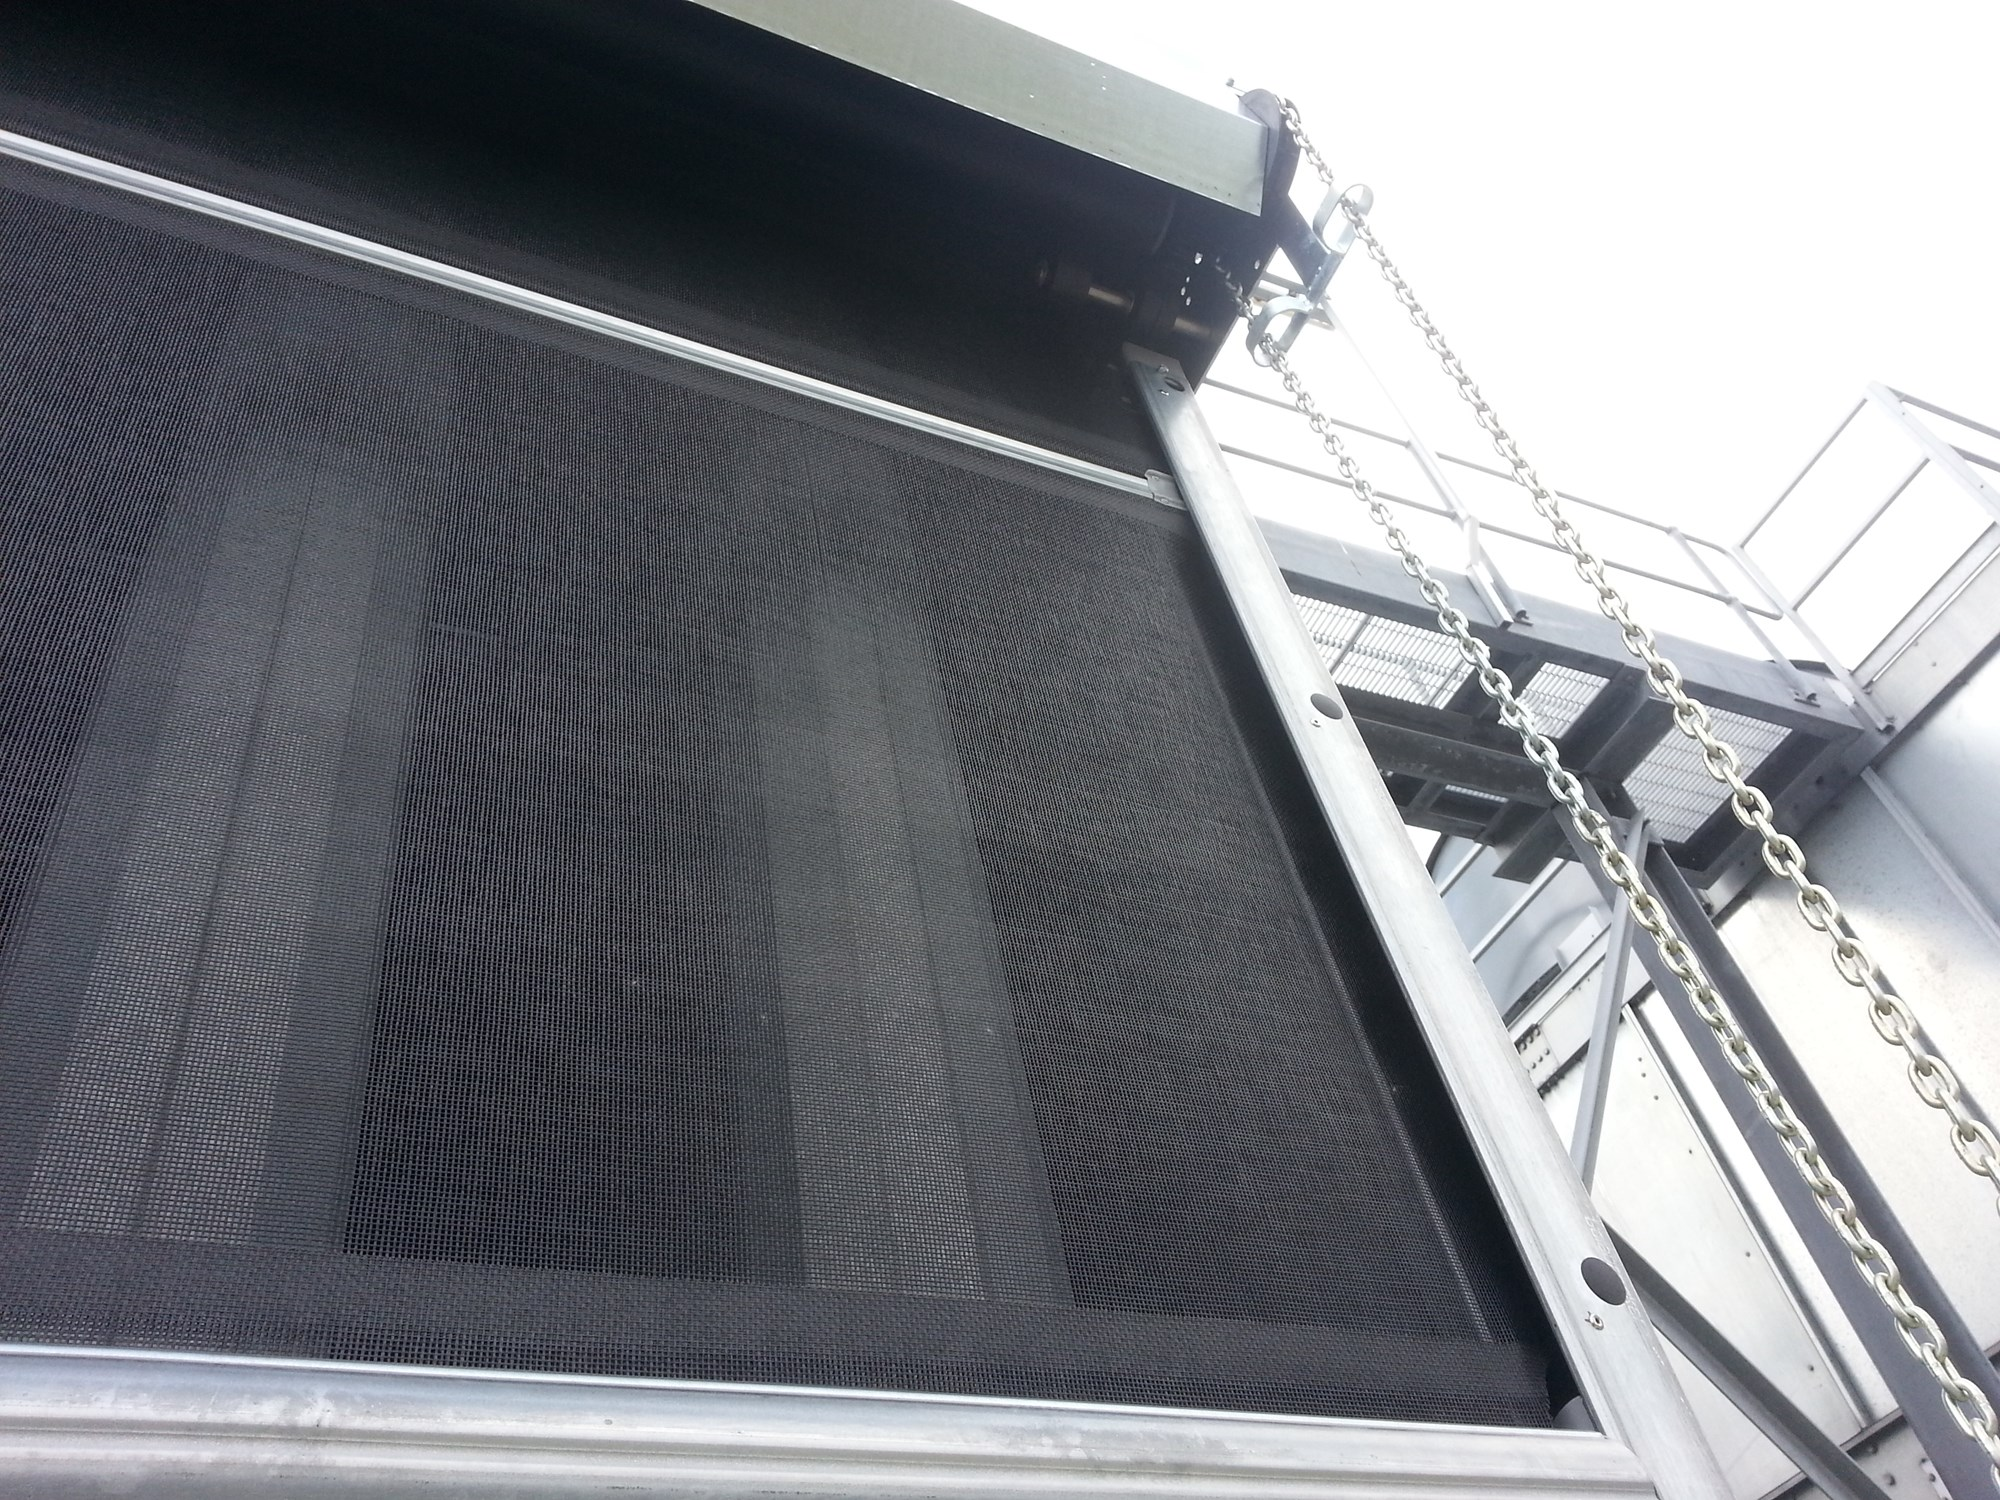 Manual air intake screen deployment for cooling tower systems